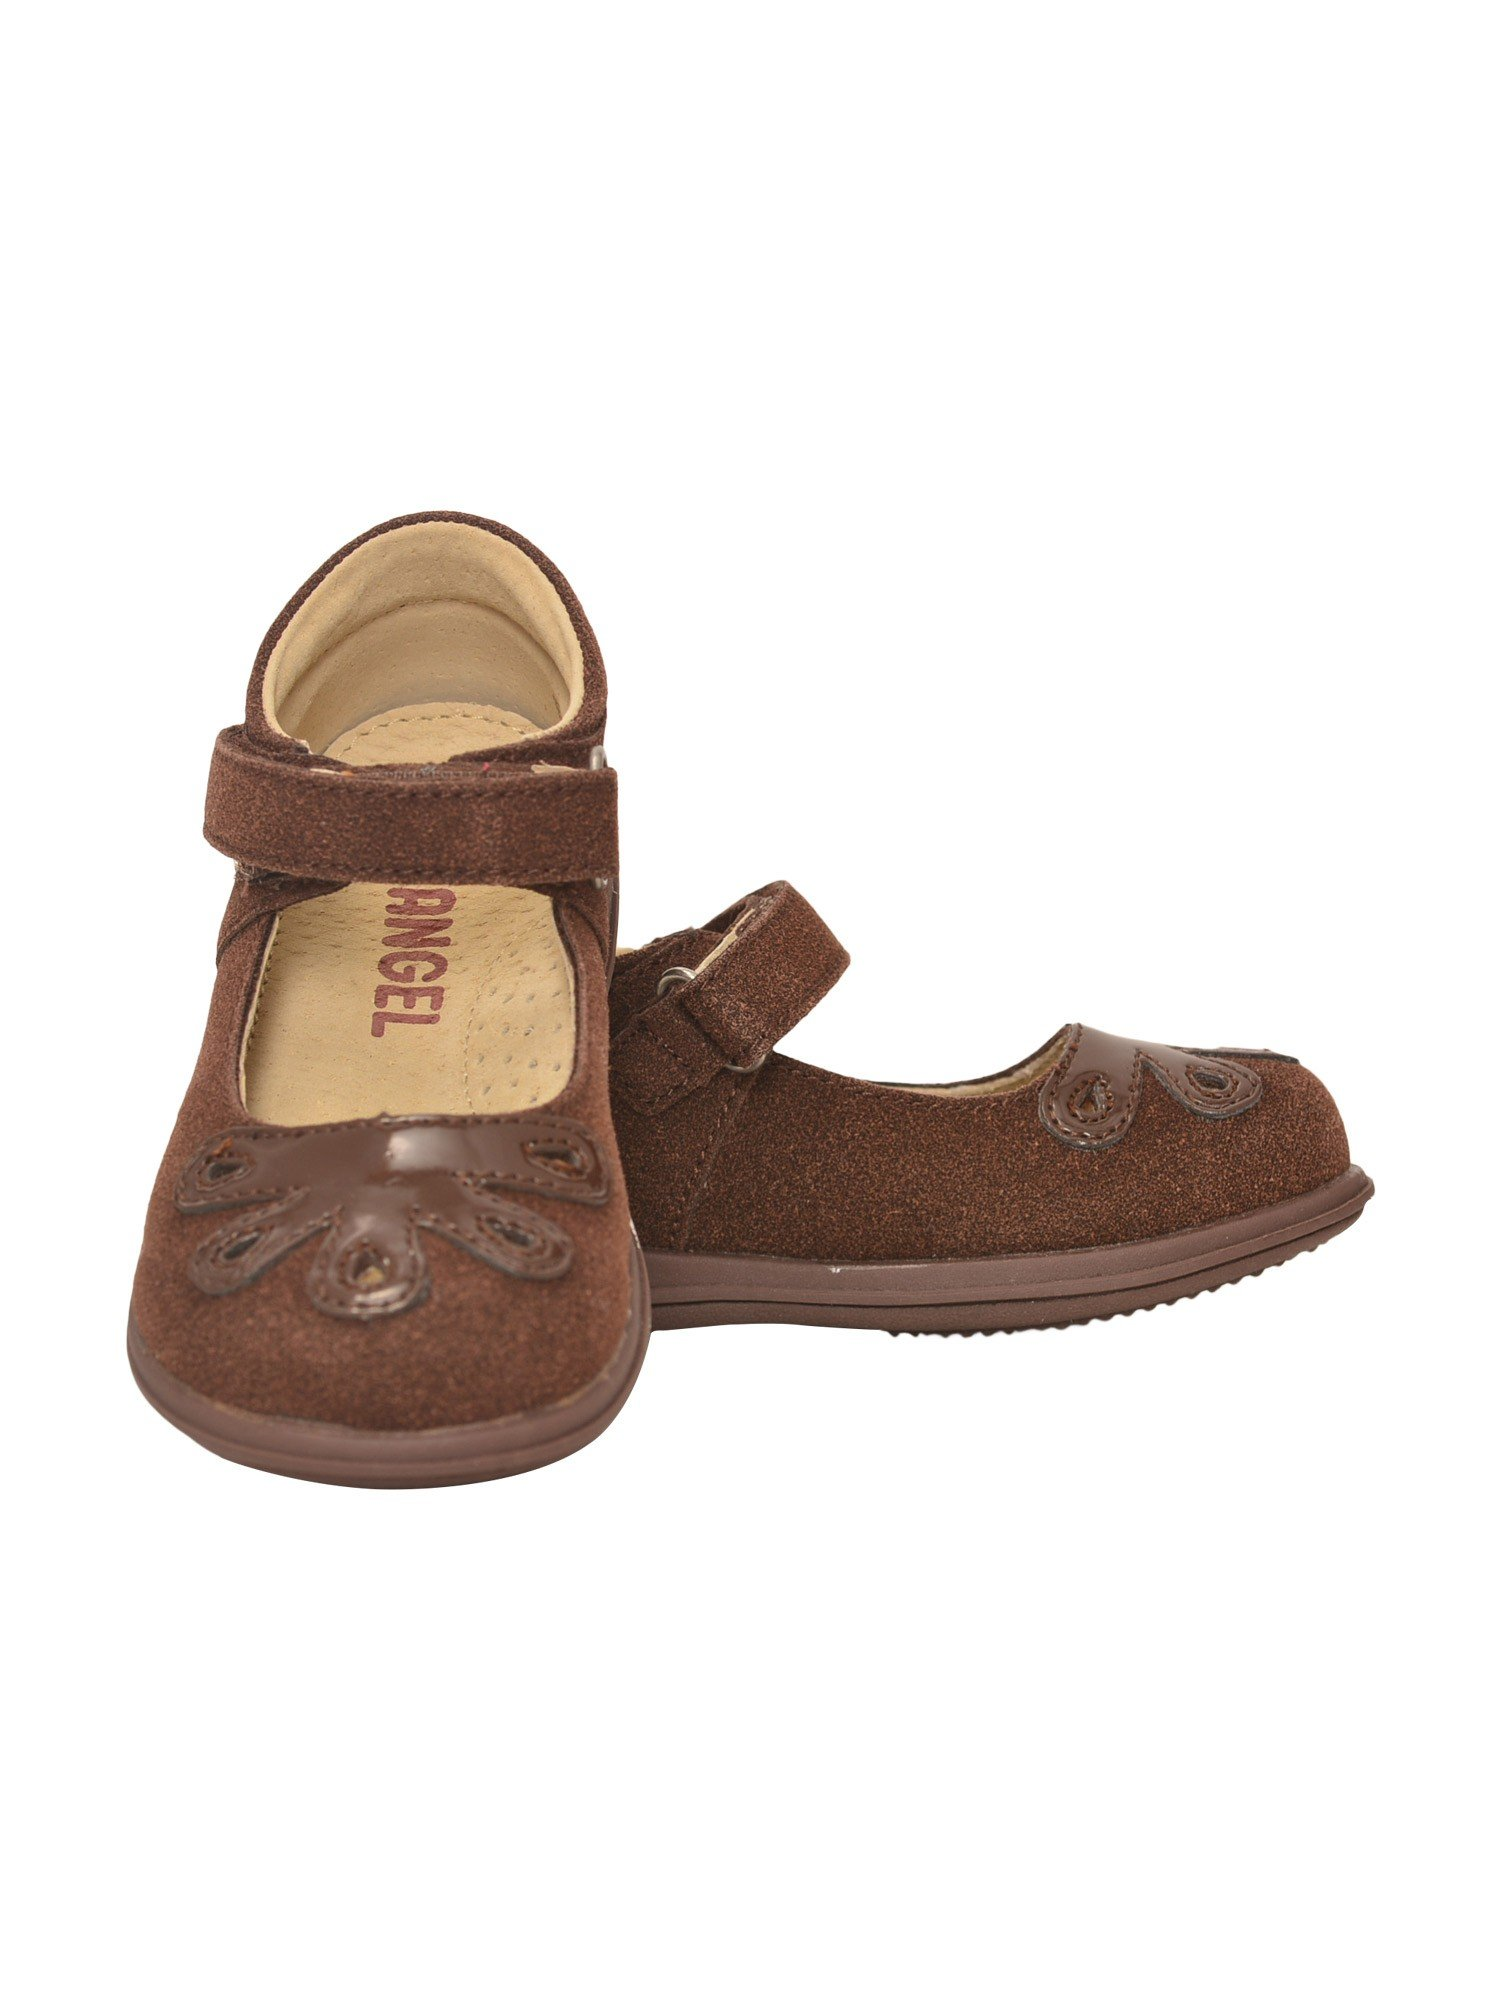 Angel Girls Brown Bloom Leather Lining Gum Sole Mary Jane Shoes 12 Kids